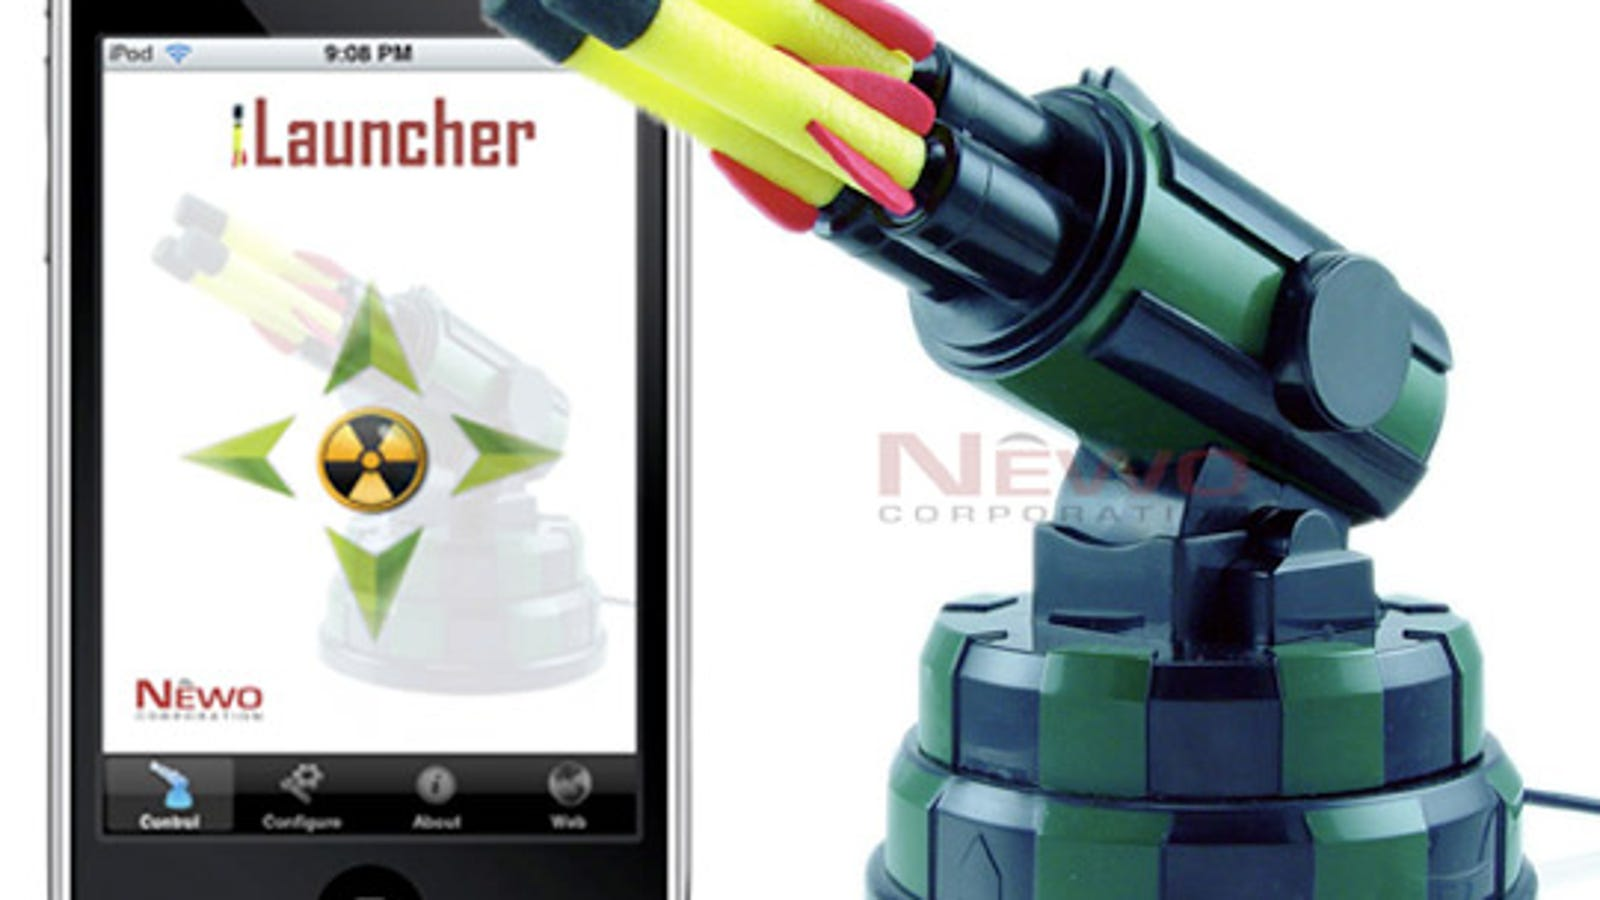 iLauncher Gives You iPhone Controls for USB Missile Launcher